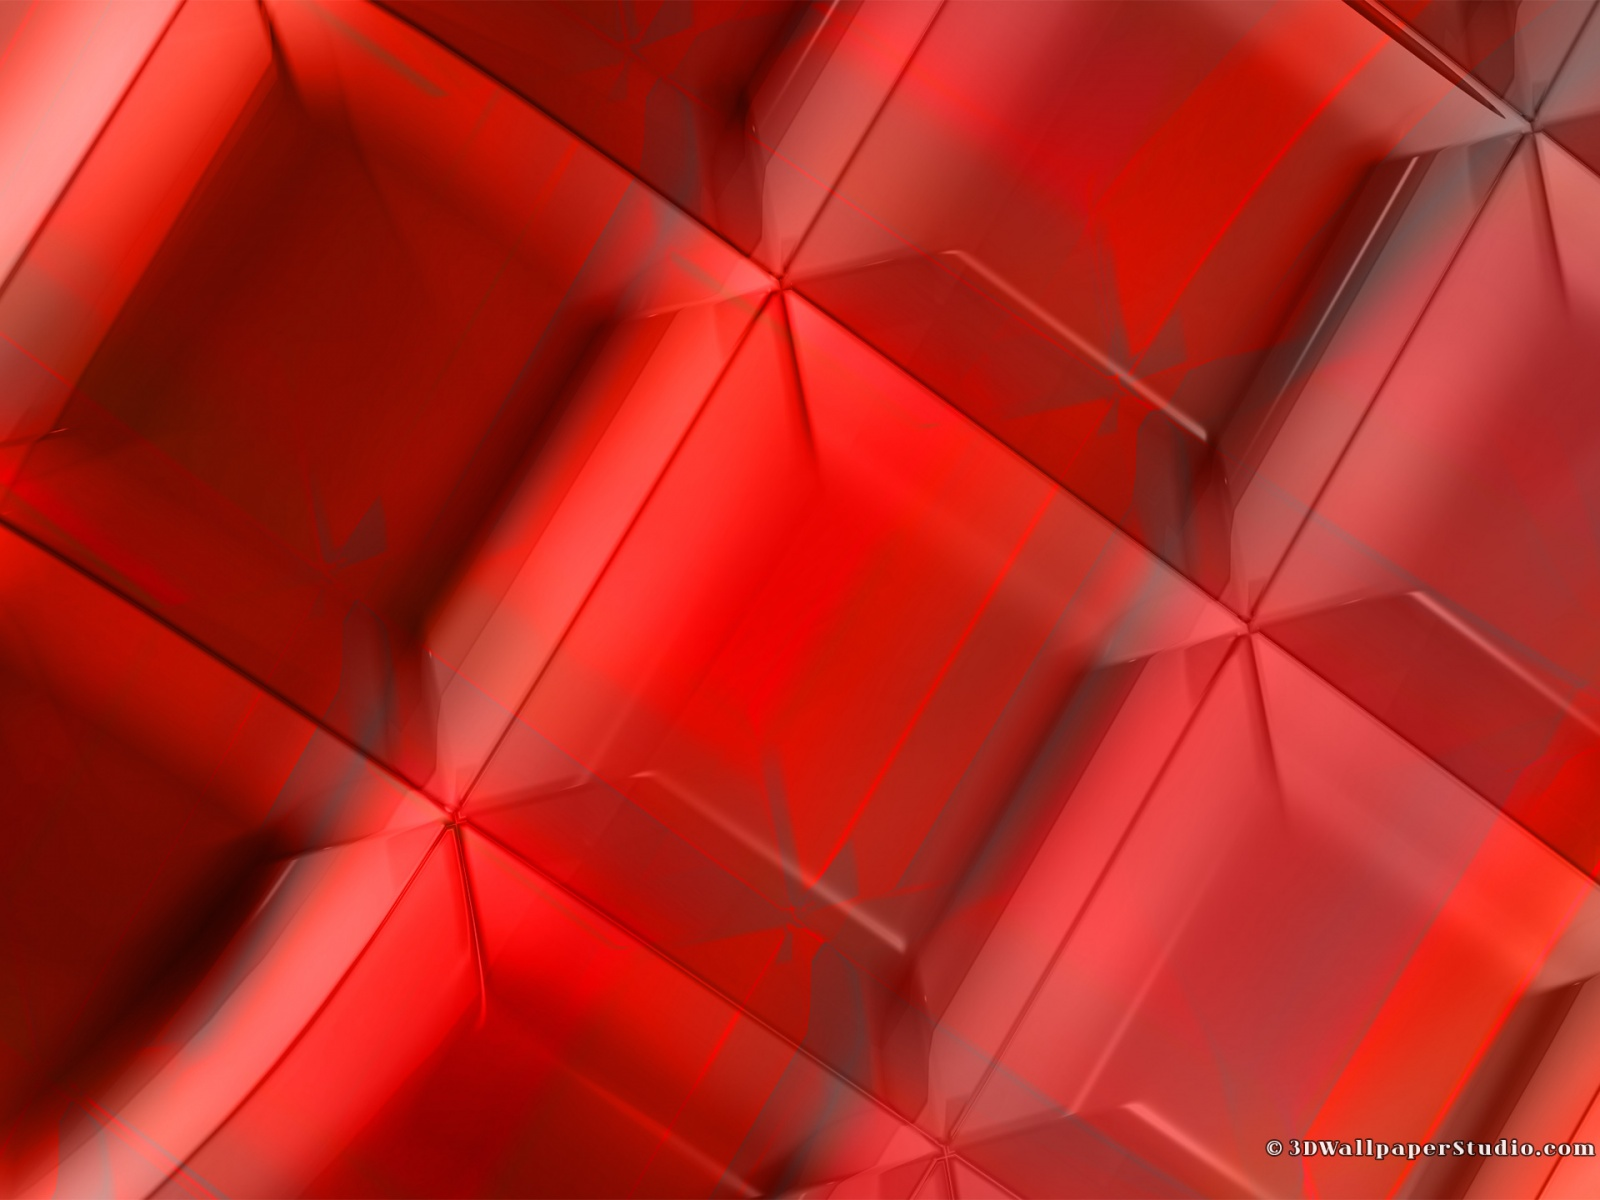 Deep red abstract wallpapers 1600x1200 1600x1200